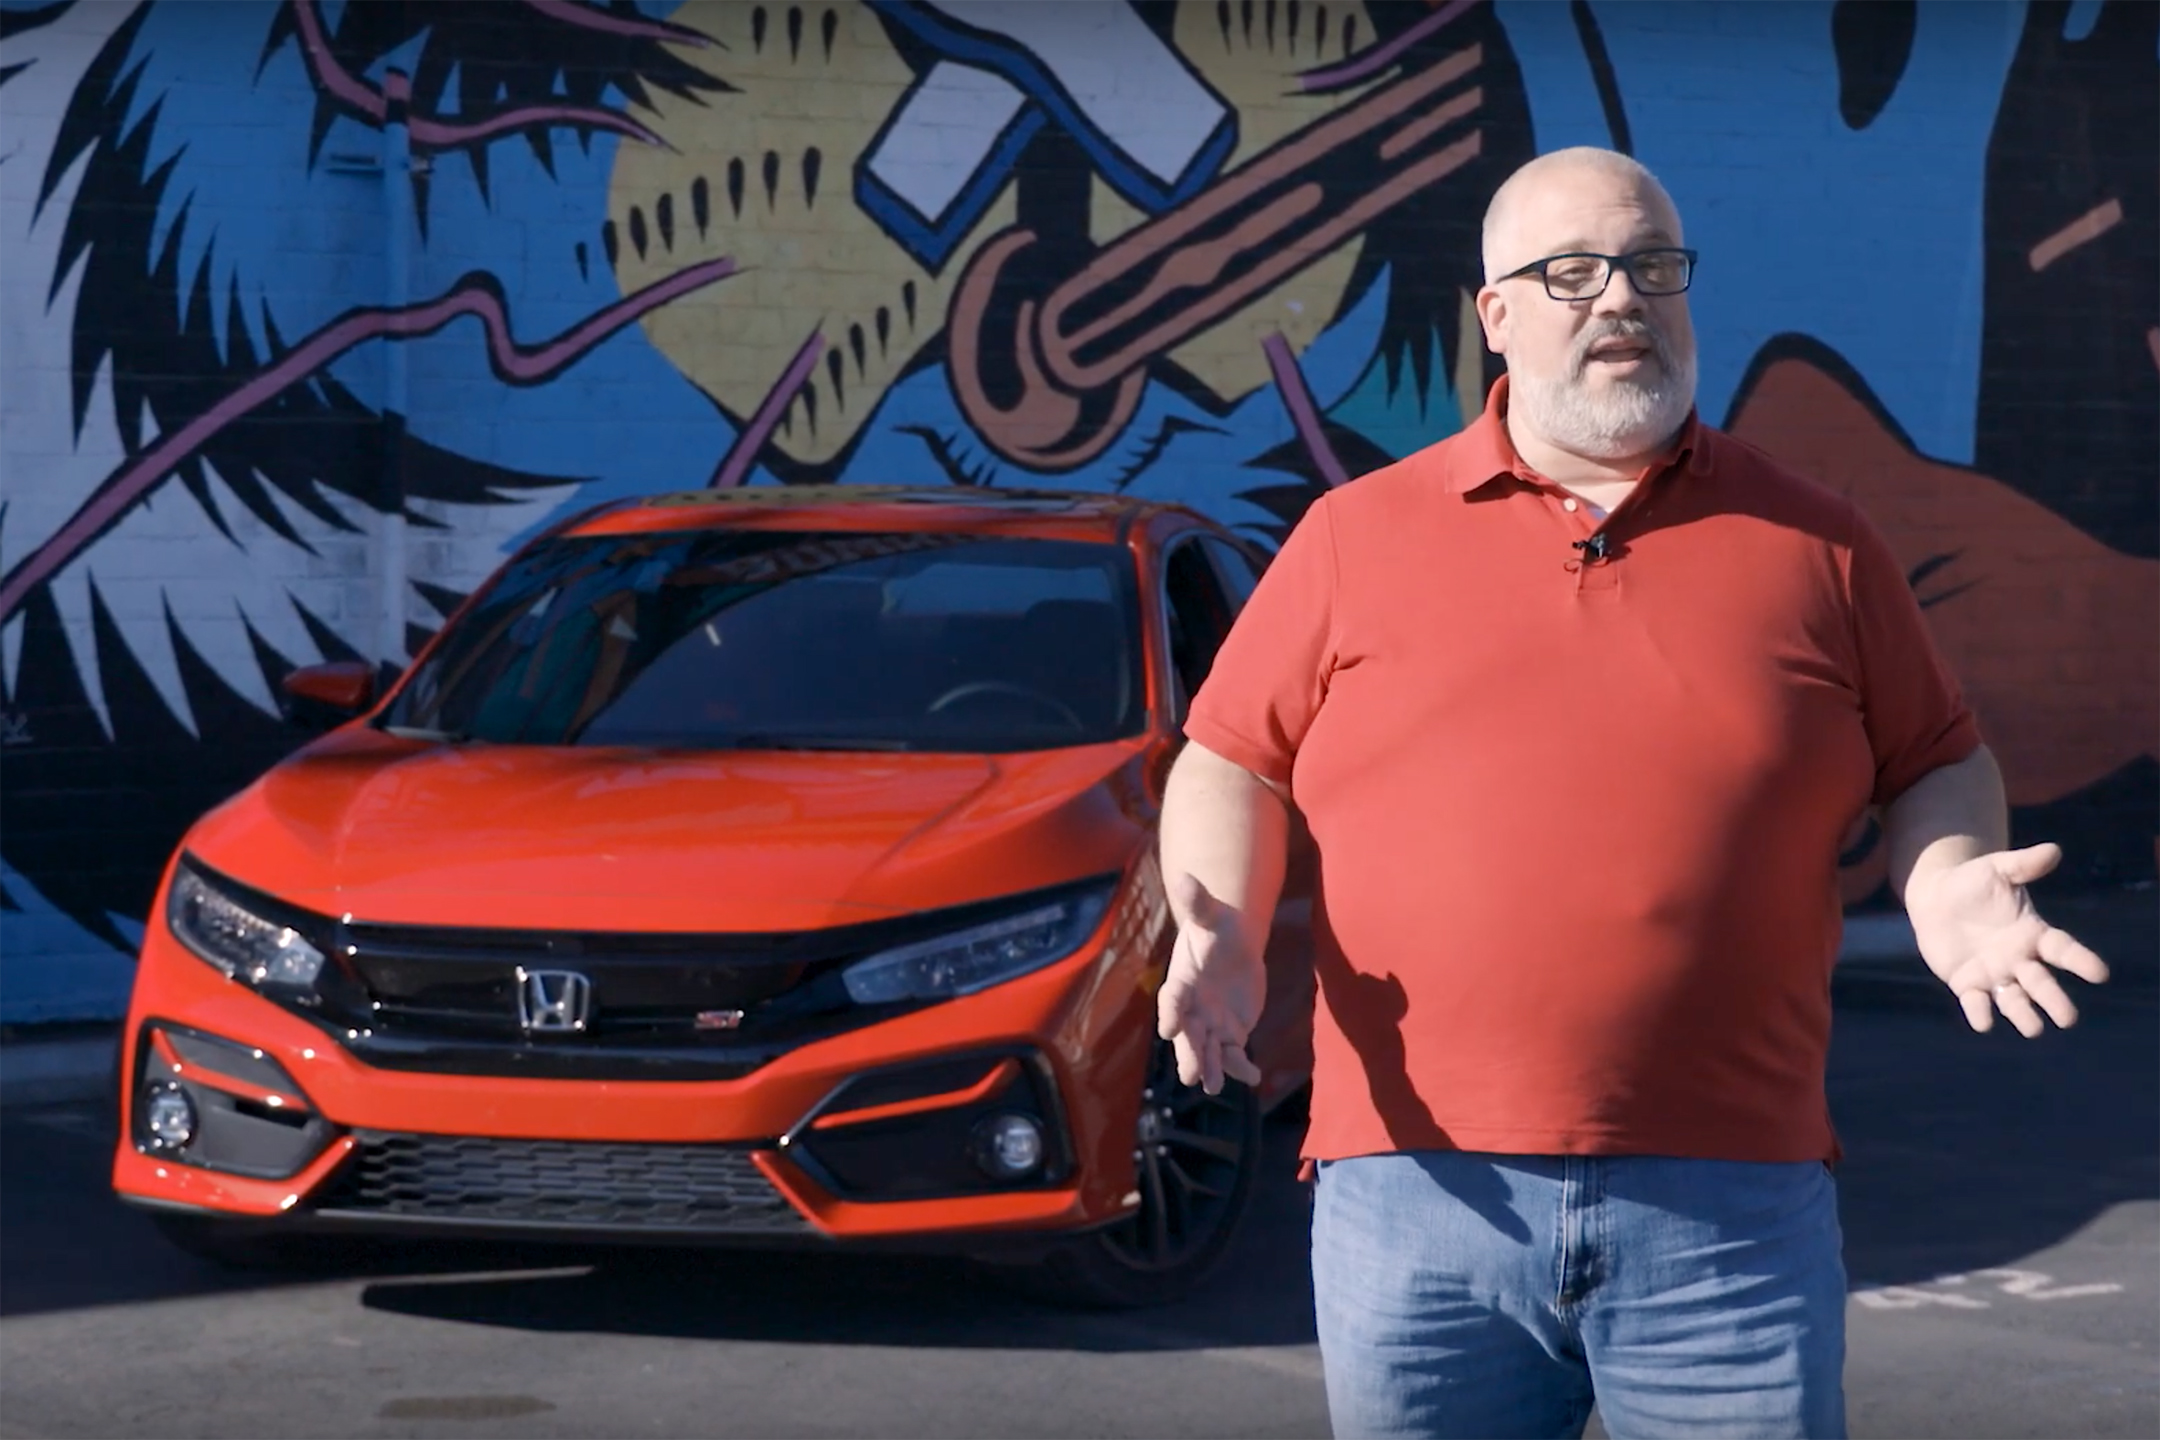 2020 Honda Civic Si Video: The Goldilocks of the Lineup